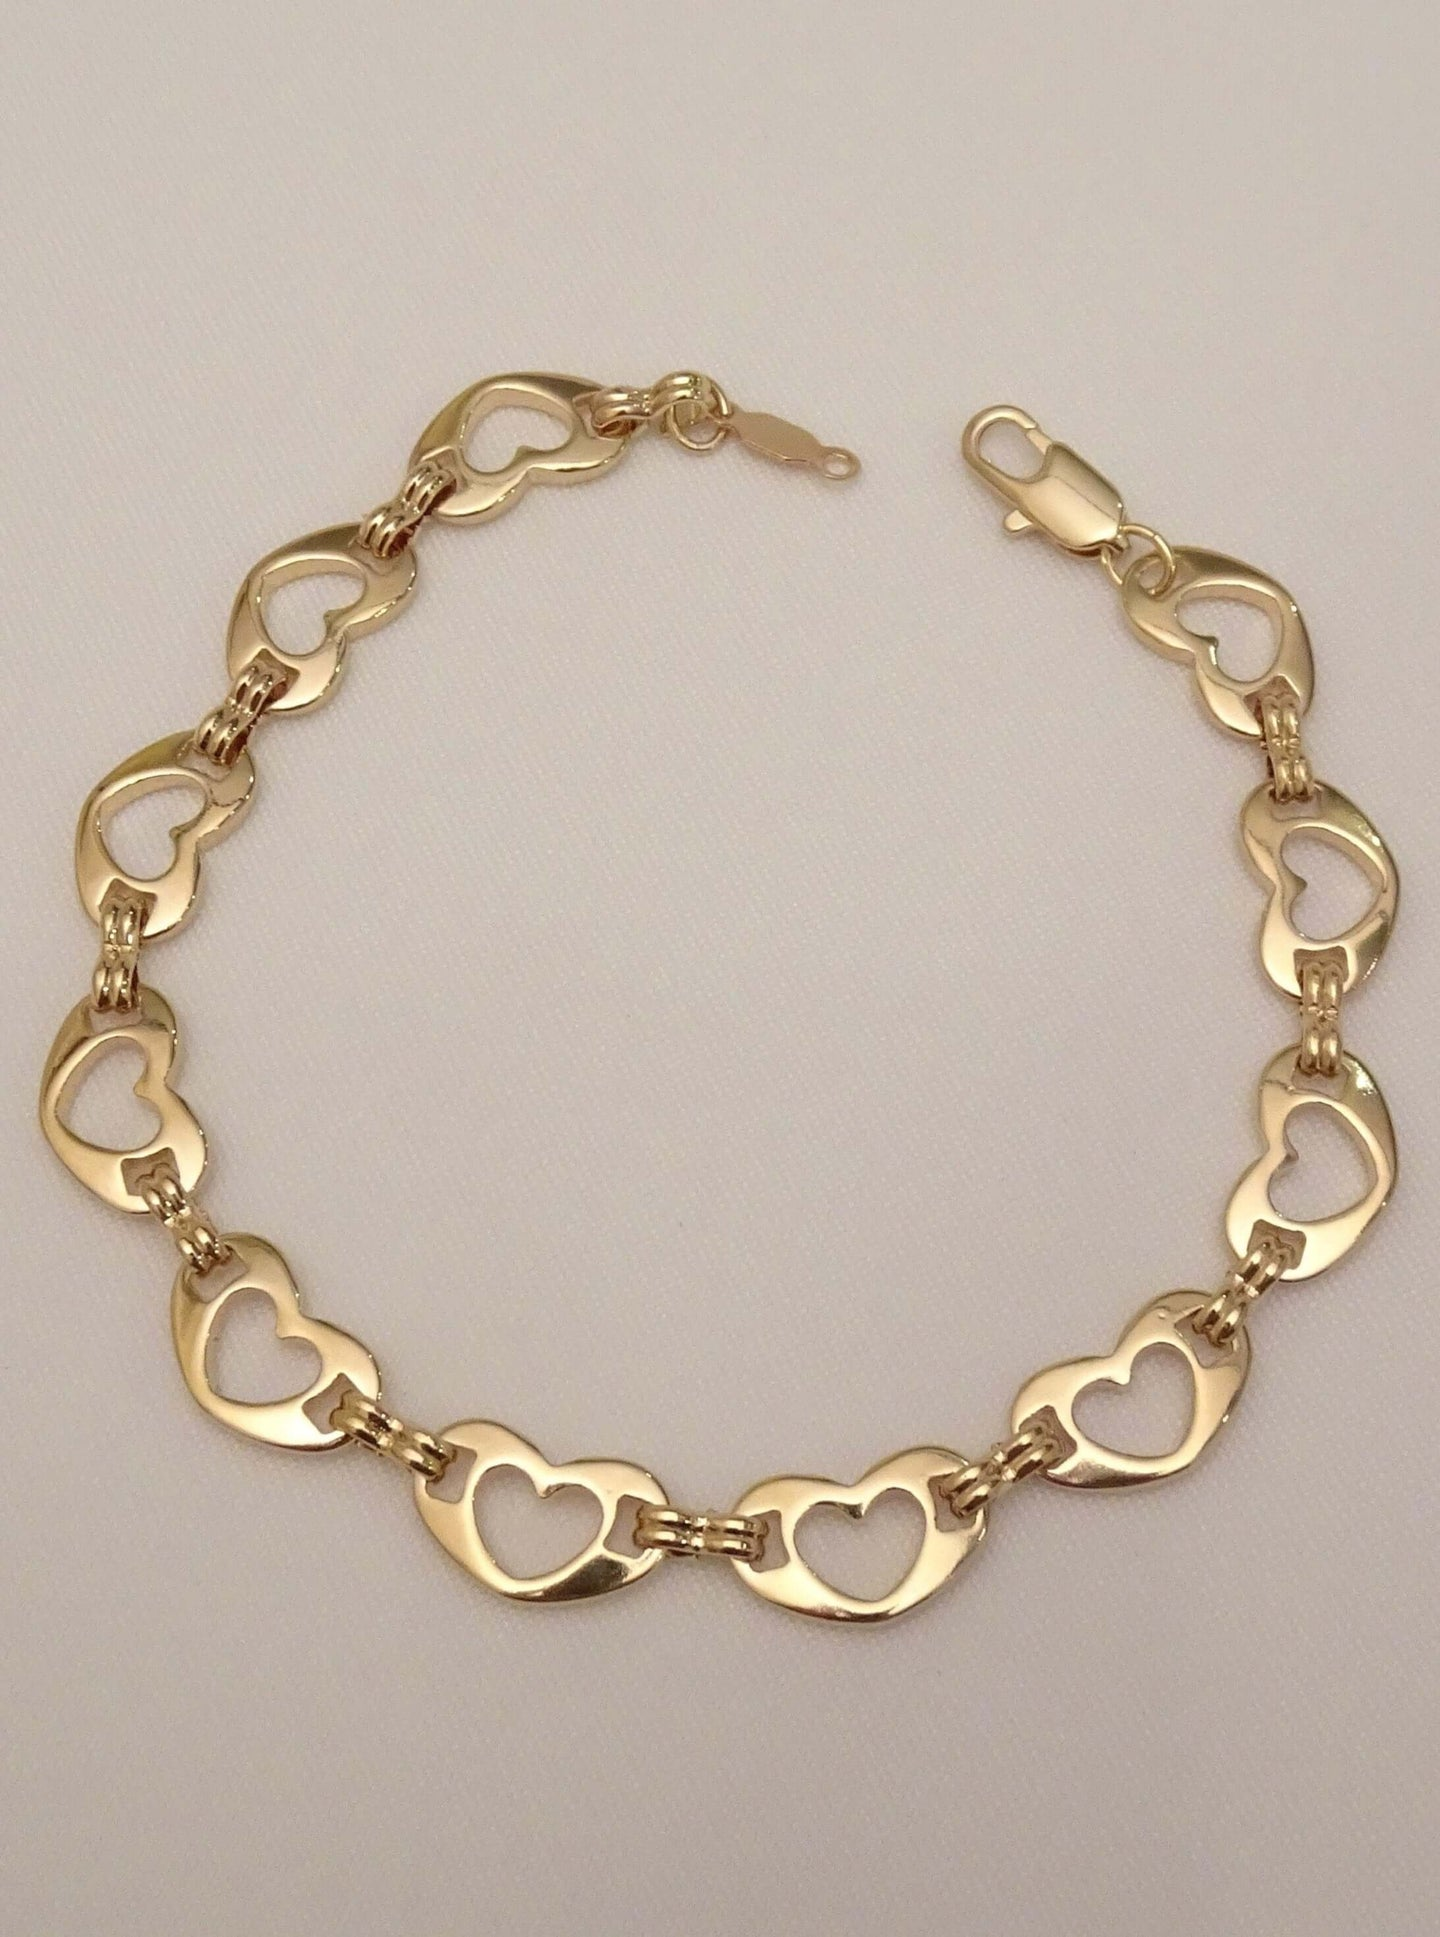 heart bracelet, gold heart bracelet, bracelet for girlfriend, cute bracelets, cute bracelets for girls, cute bracelets for her, cute bracelets for girlfriend, cute best friend bracelets, unique bracelet